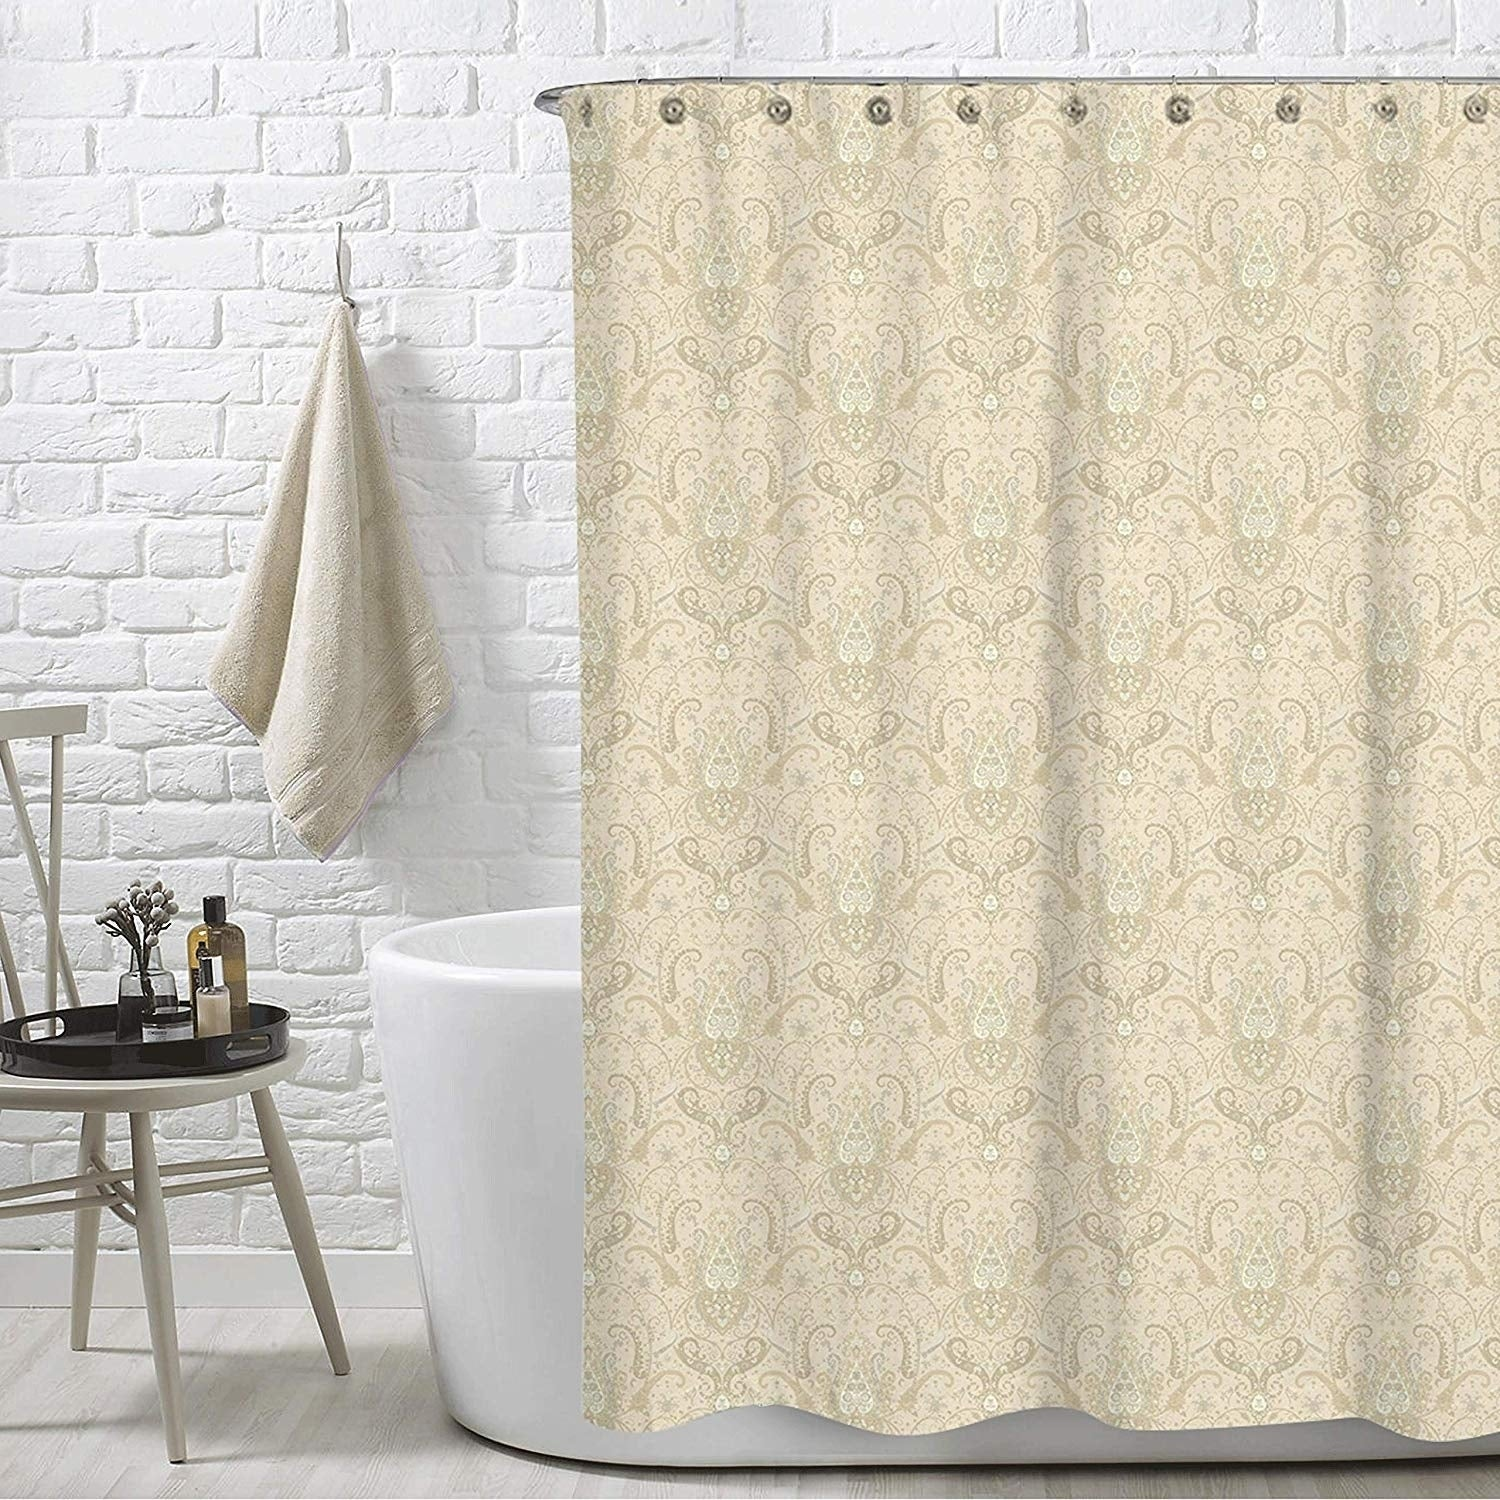 Shop Royal Paisley Beige Lucia Water Repellent Shower Curtain 72X72Free 12 Piece Rings